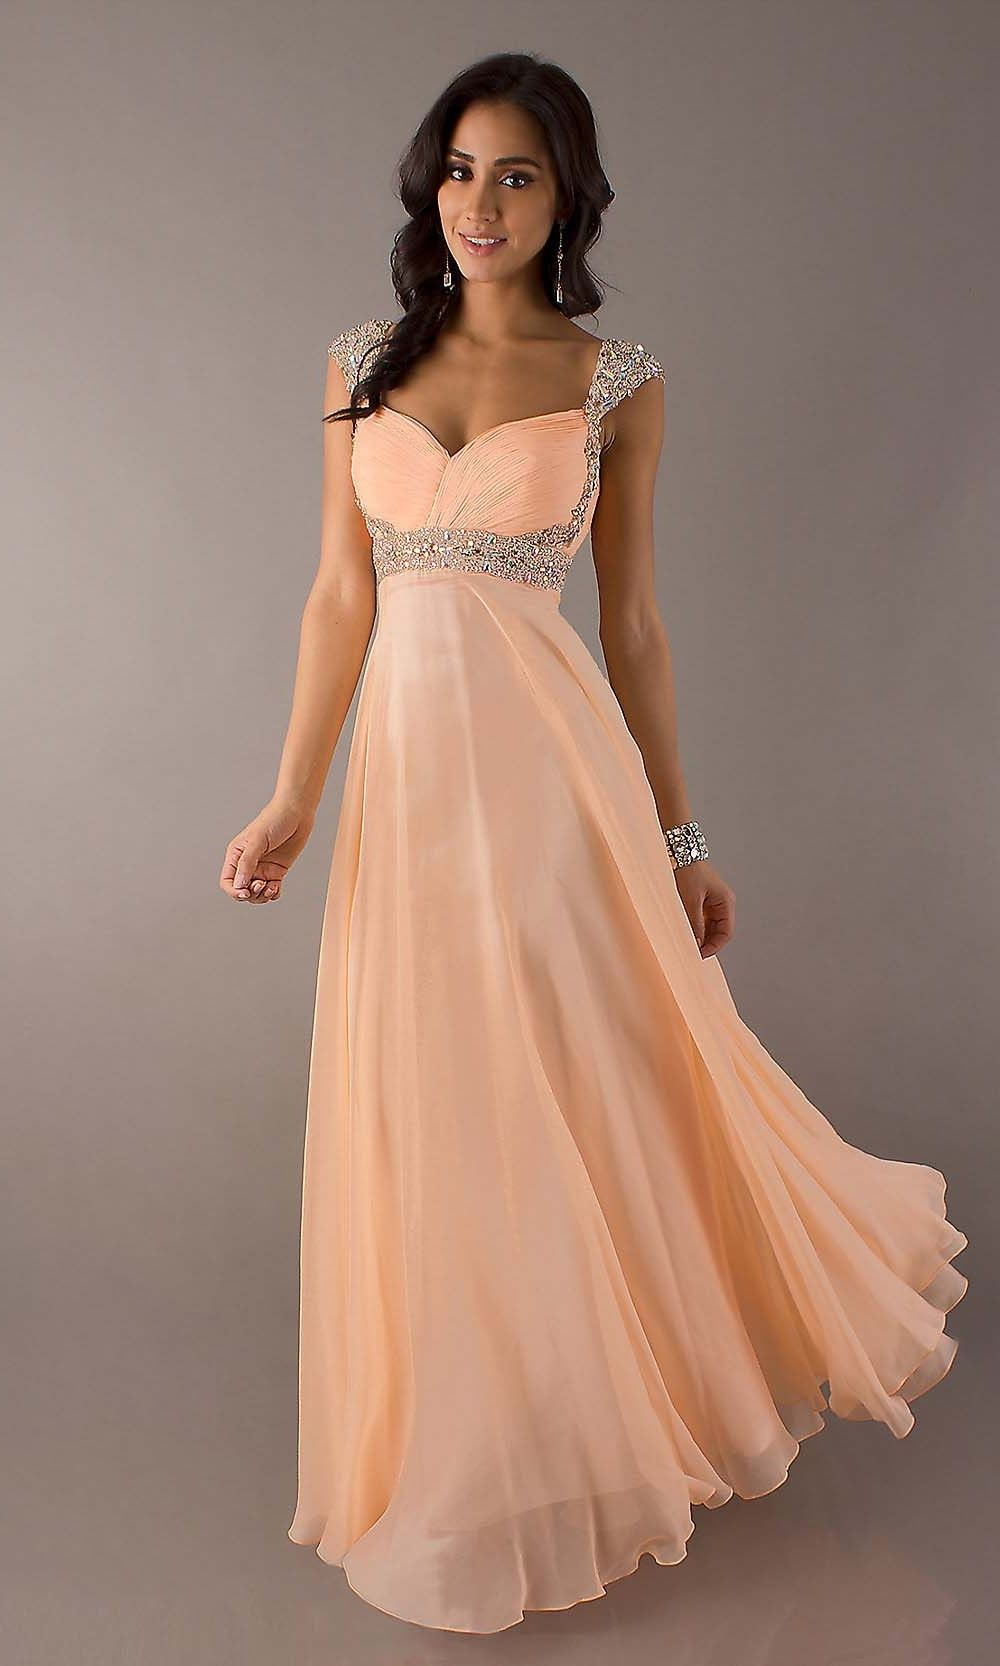 Prom Dresses with Beads